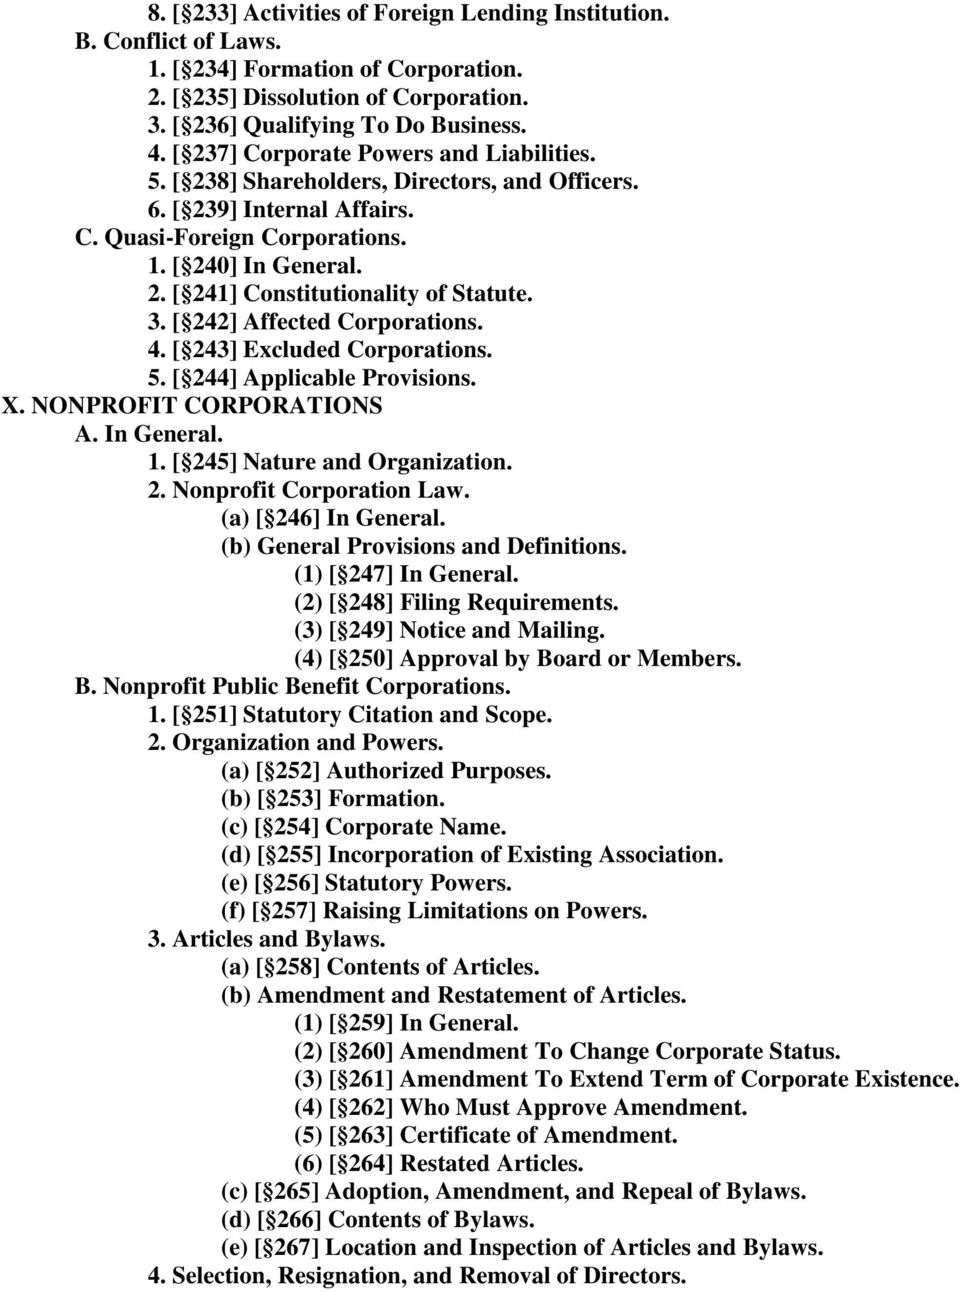 3. [ 242] Affected Corporations. 4. [ 243] Excluded Corporations. 5. [ 244] Applicable Provisions. X. NONPROFIT CORPORATIONS A. In General. 1. [ 245] Nature and Organization. 2. Nonprofit Corporation Law.